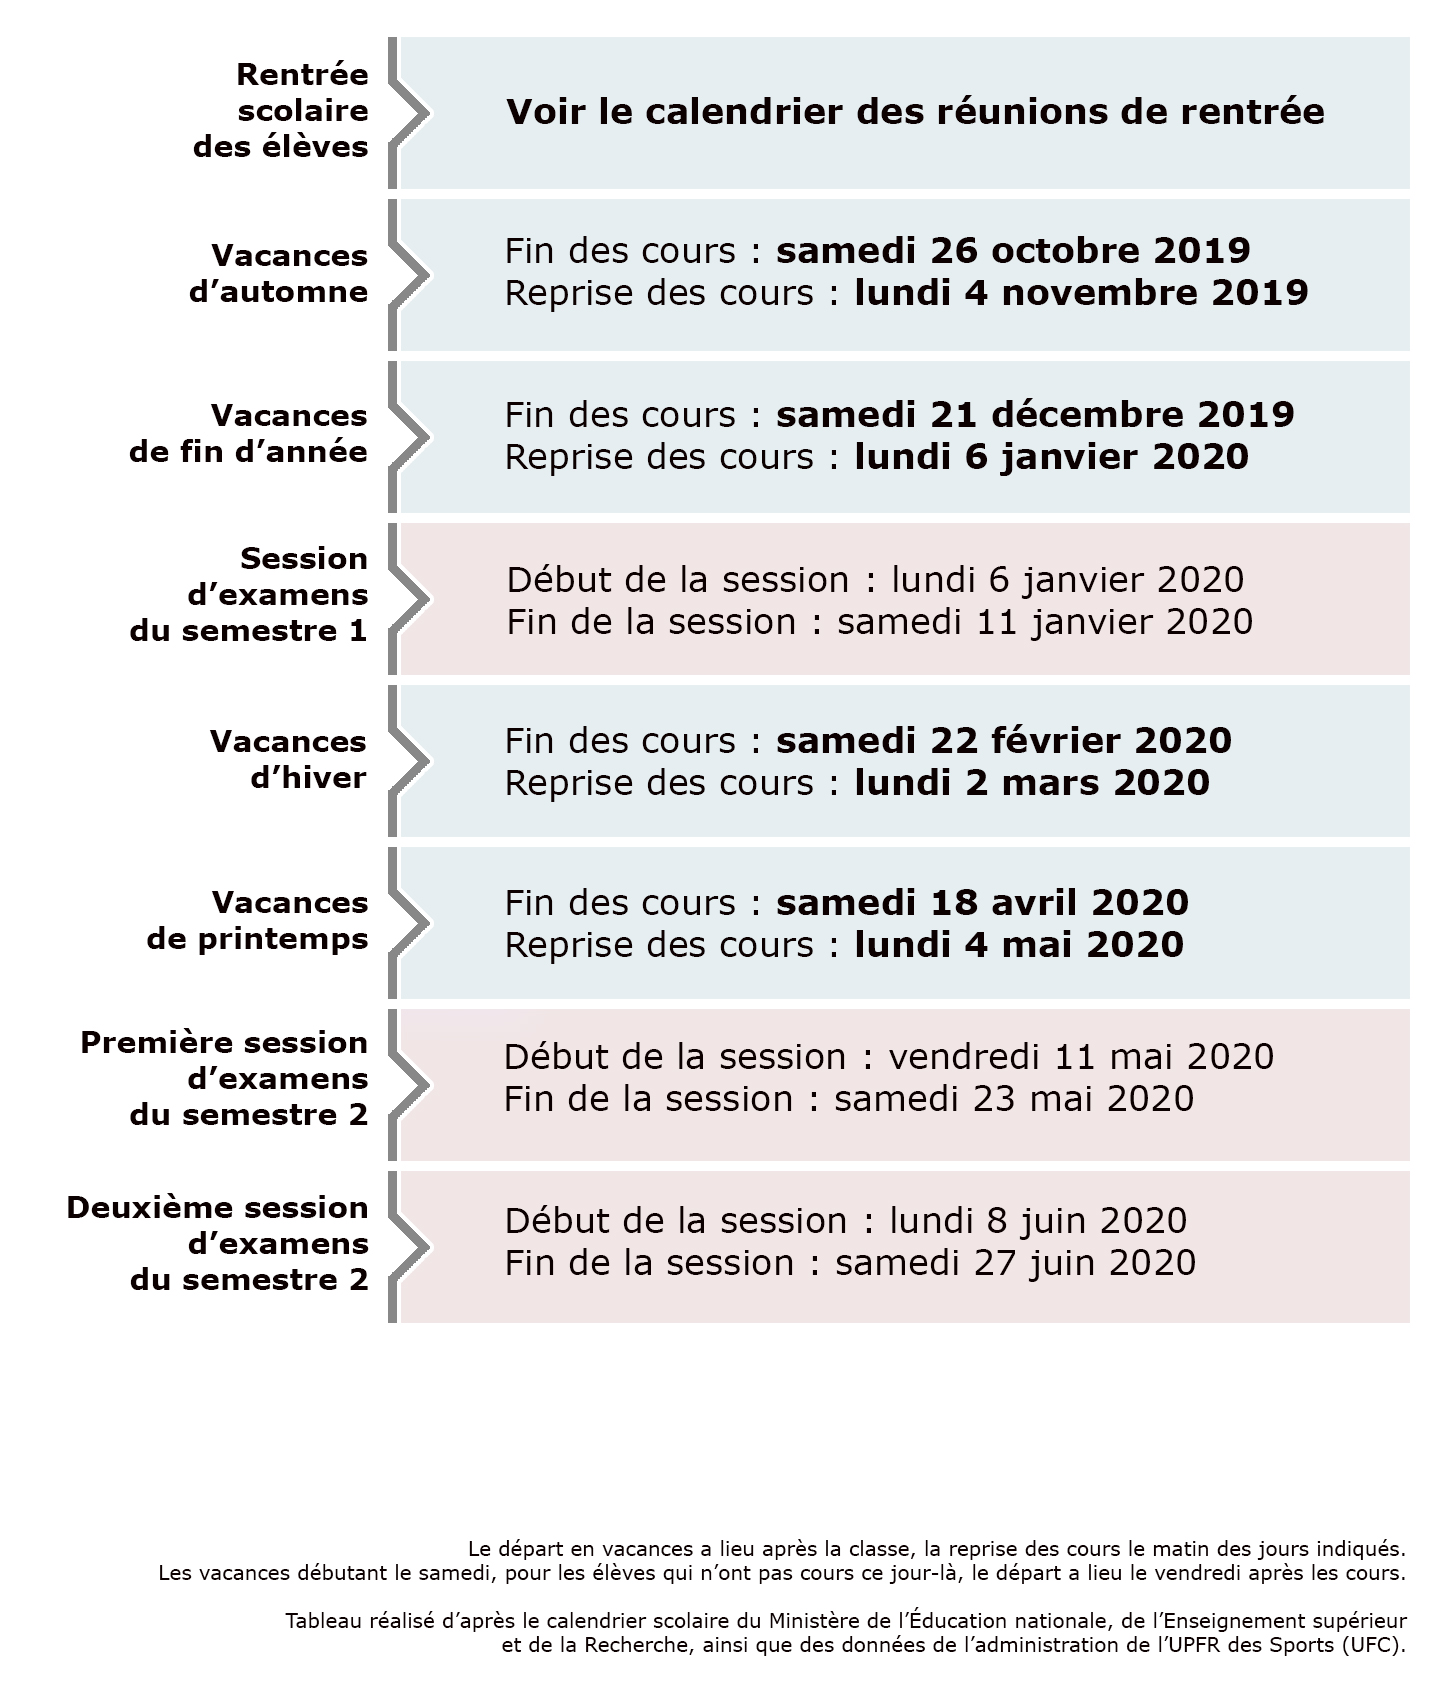 Sciences Po Calendrier Universitaire.Calendrier Universitaire